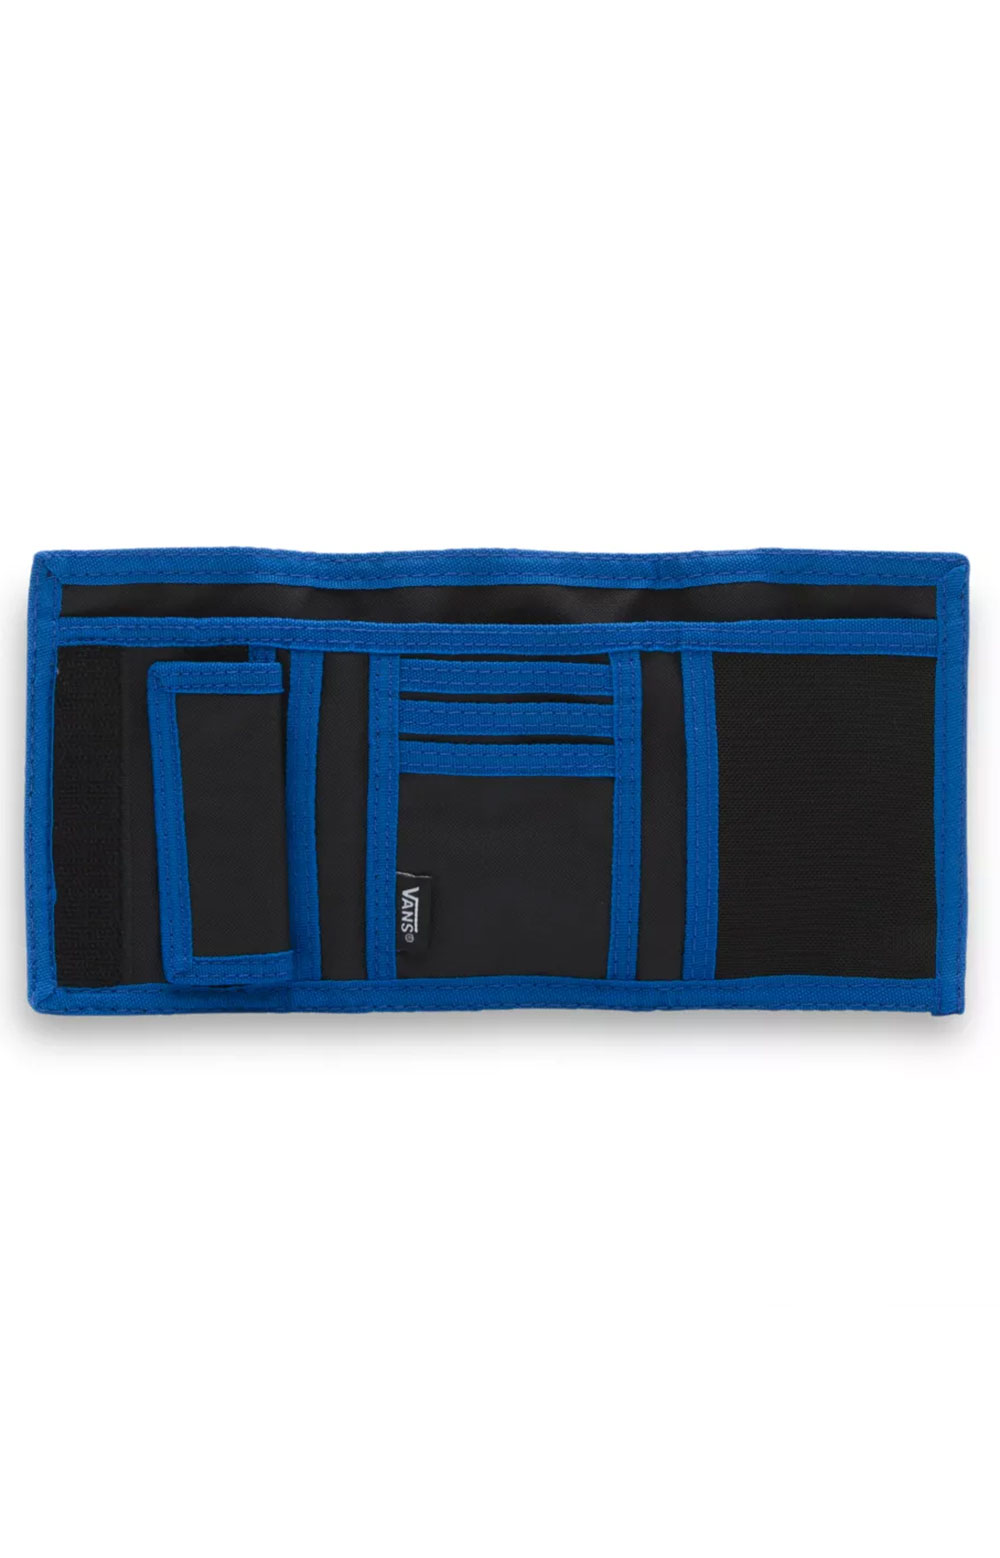 Slipped Wallet - Victoria Blue  2